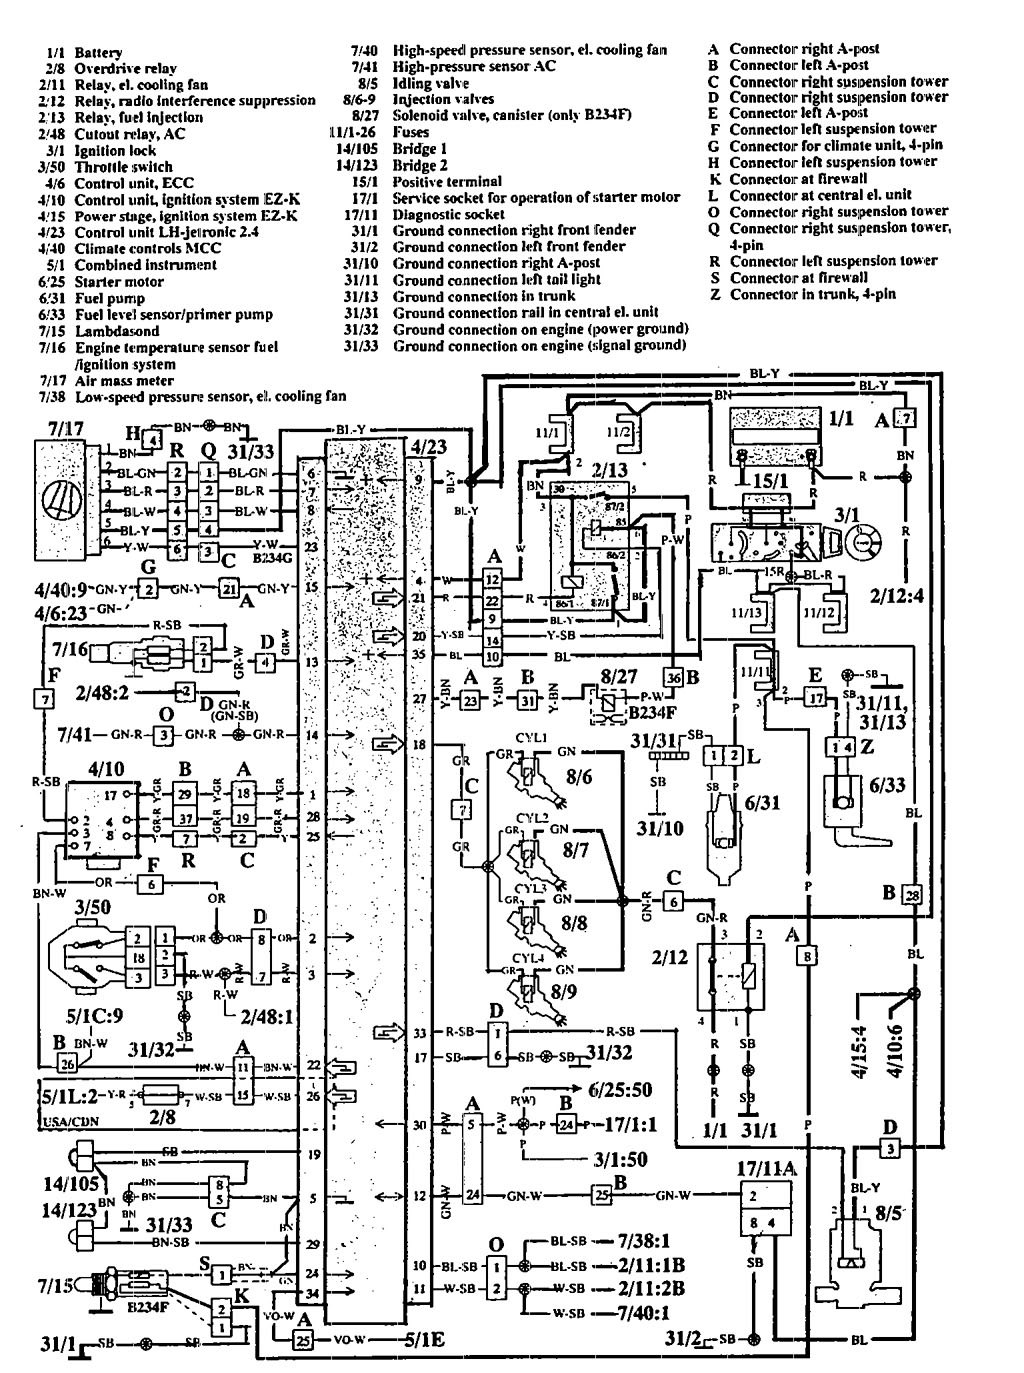 medium resolution of 95 volvo 940 wiring diagram wiring diagram yer volvo 940 electrical wiring diagram 1995 volvo 940